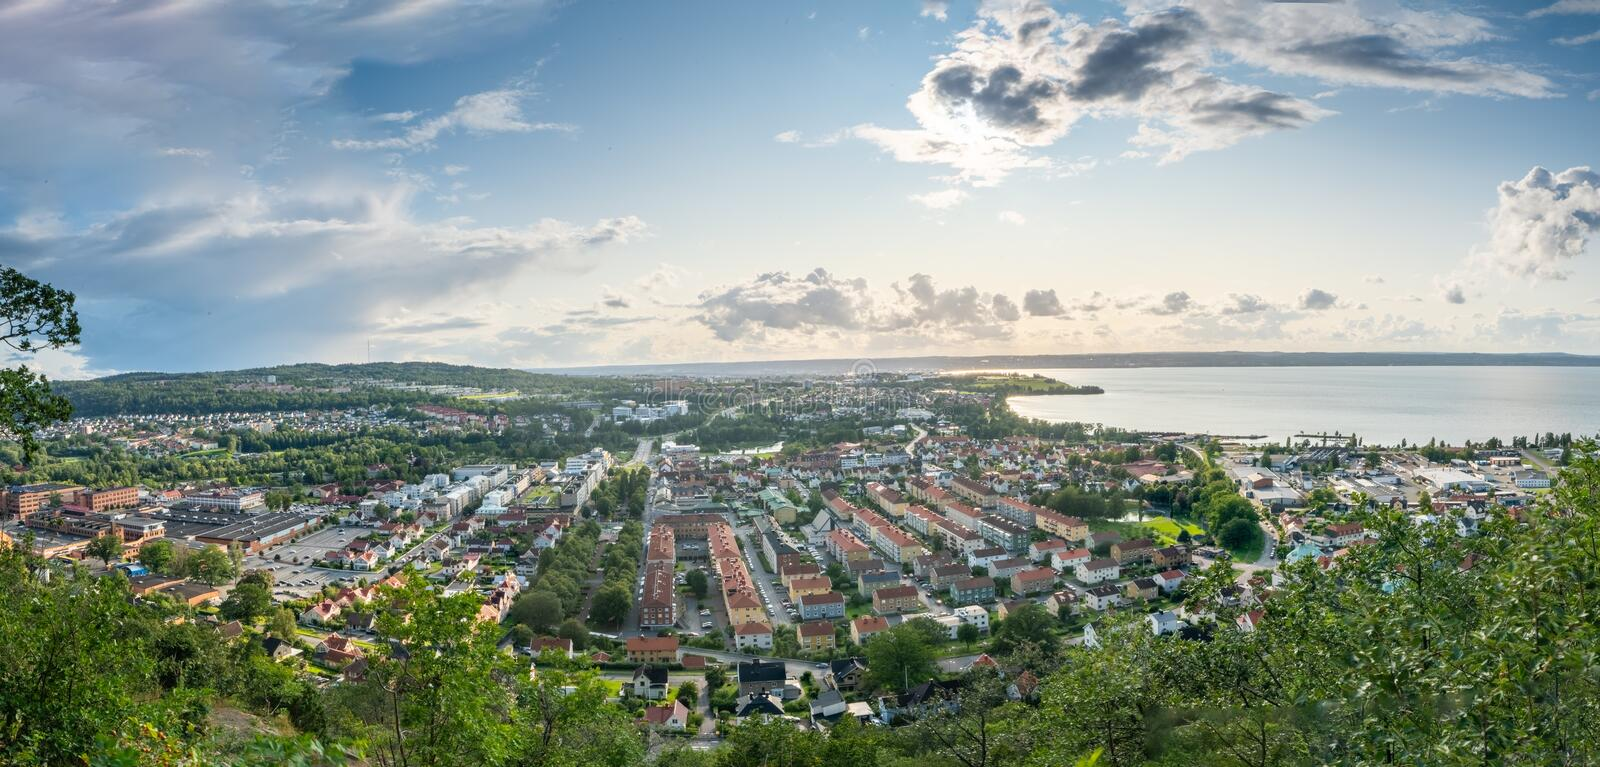 Huskvarna Sweden. The City of Jonkoping from Huskvarna  lookout in Sweden stock images